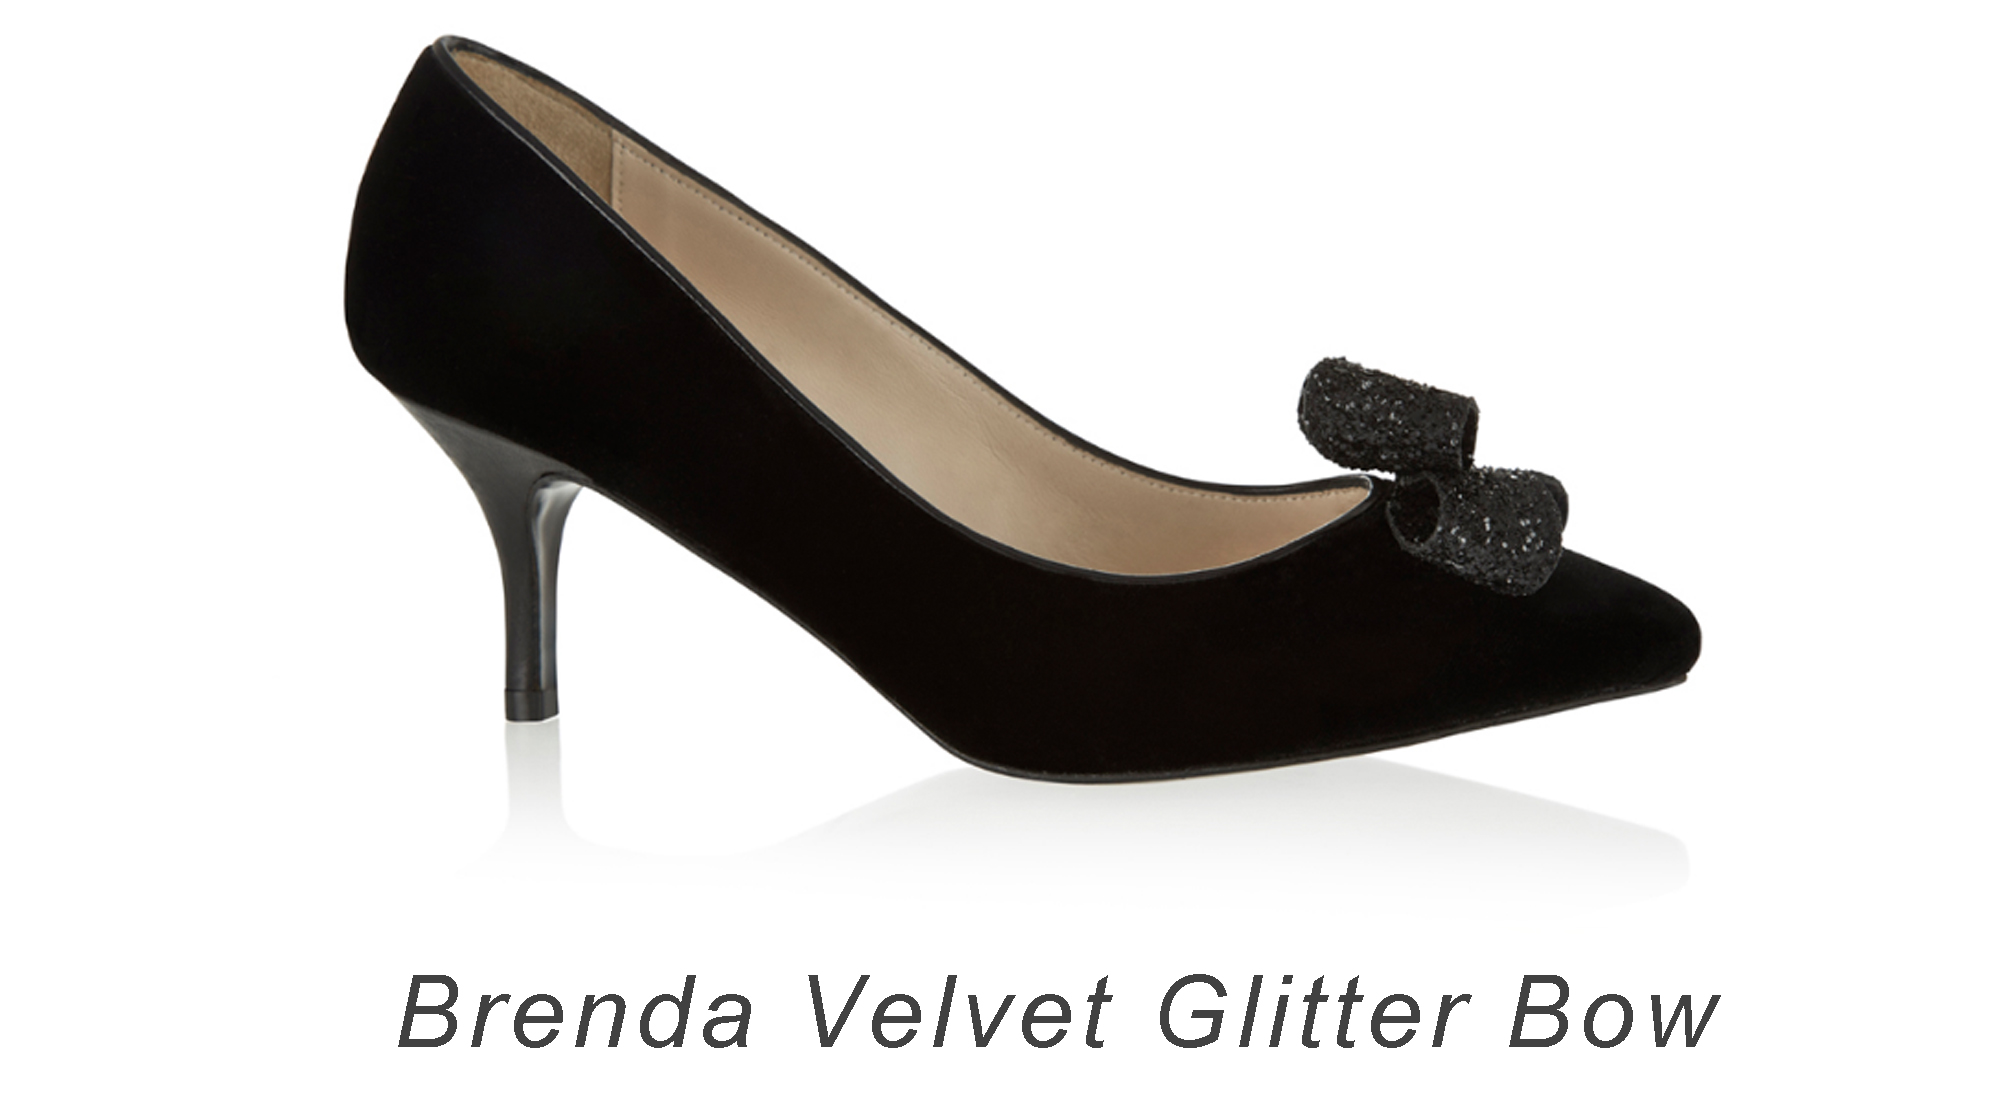 French Sole Brenda Velvet Glitter Bow